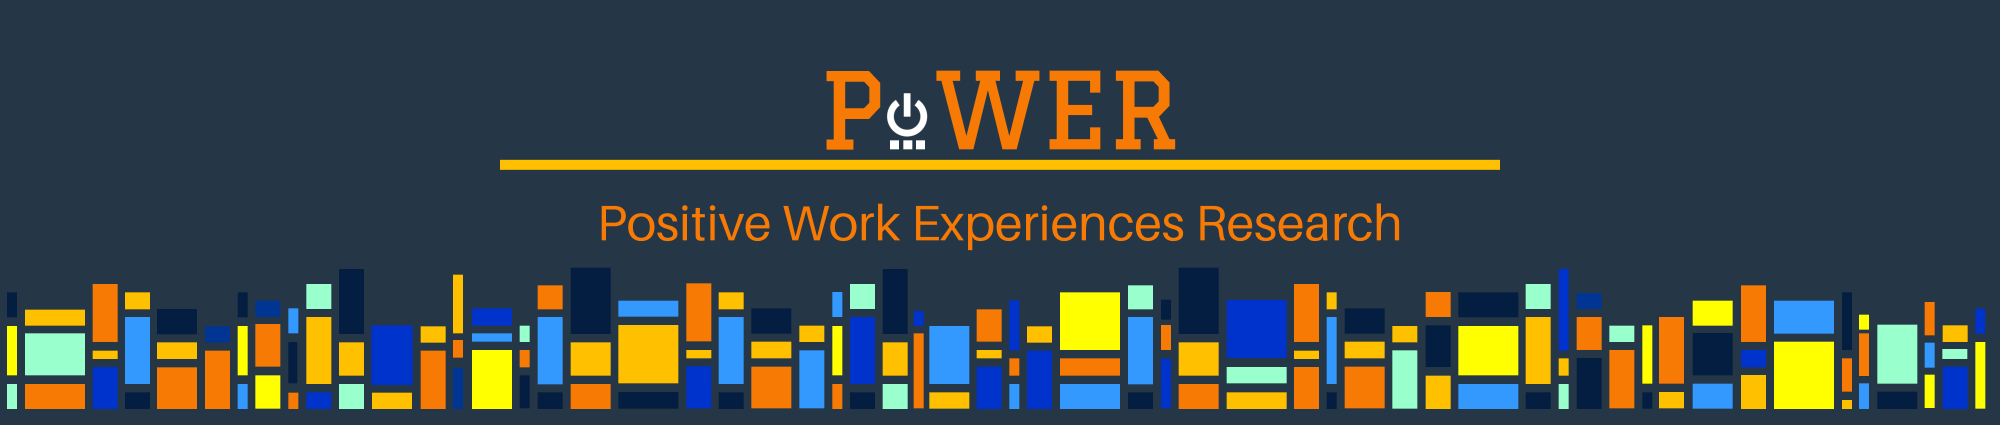 Positive Work Experiences Research